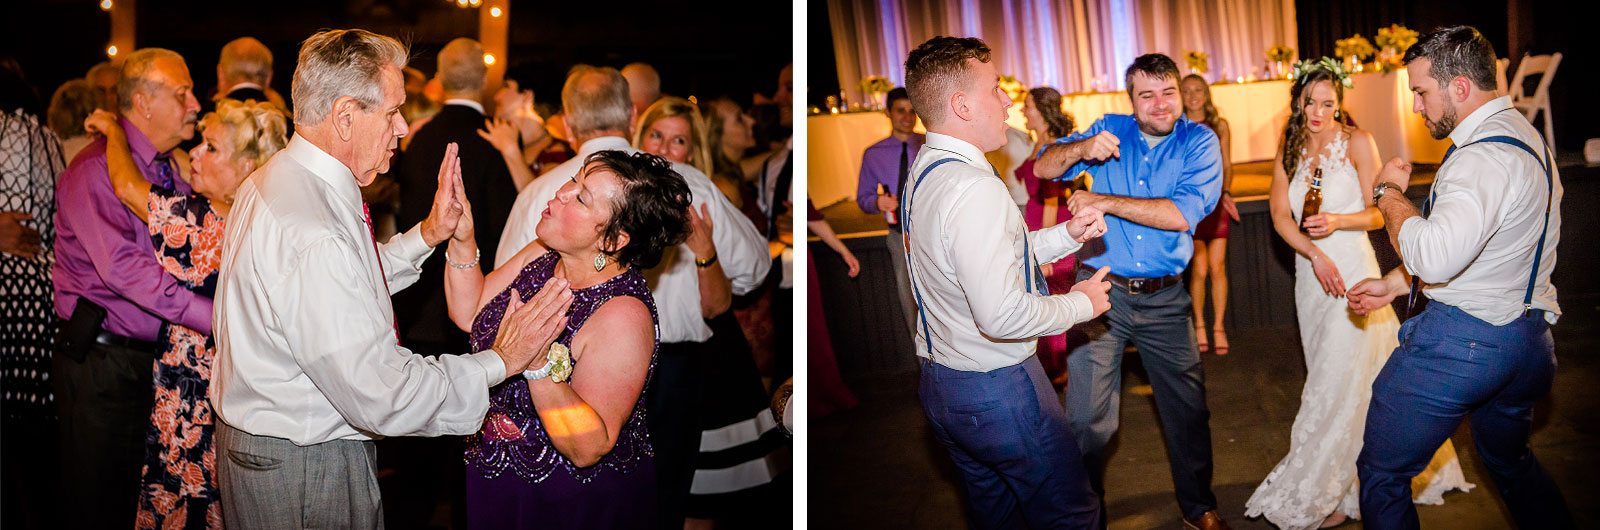 Eric_and_Christy_Photography_Blog_Stephanie_Nick_Wedding-112-113